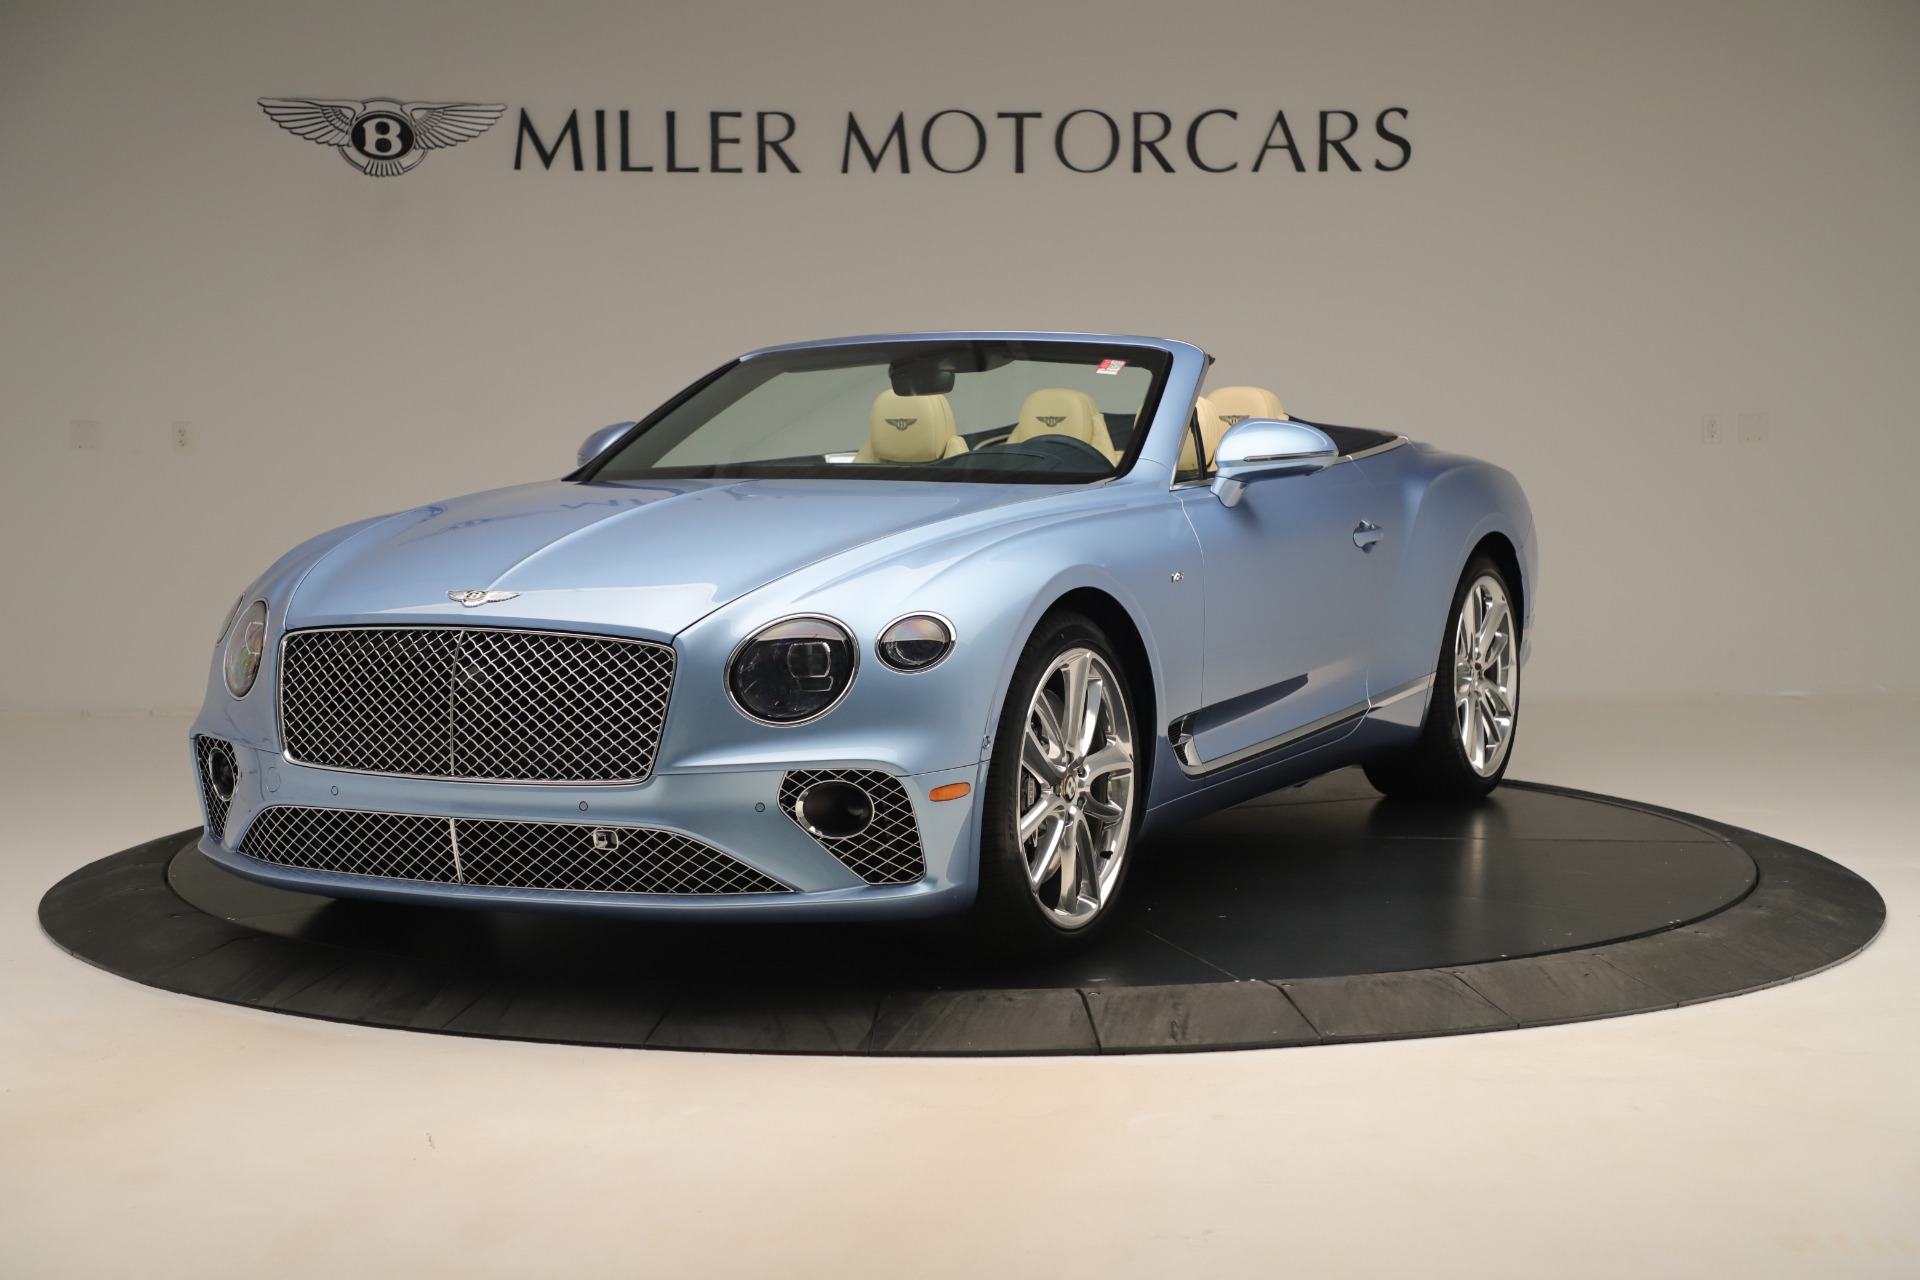 Used 2020 Bentley Continental GTC V8 for sale $288,020 at Rolls-Royce Motor Cars Greenwich in Greenwich CT 06830 1